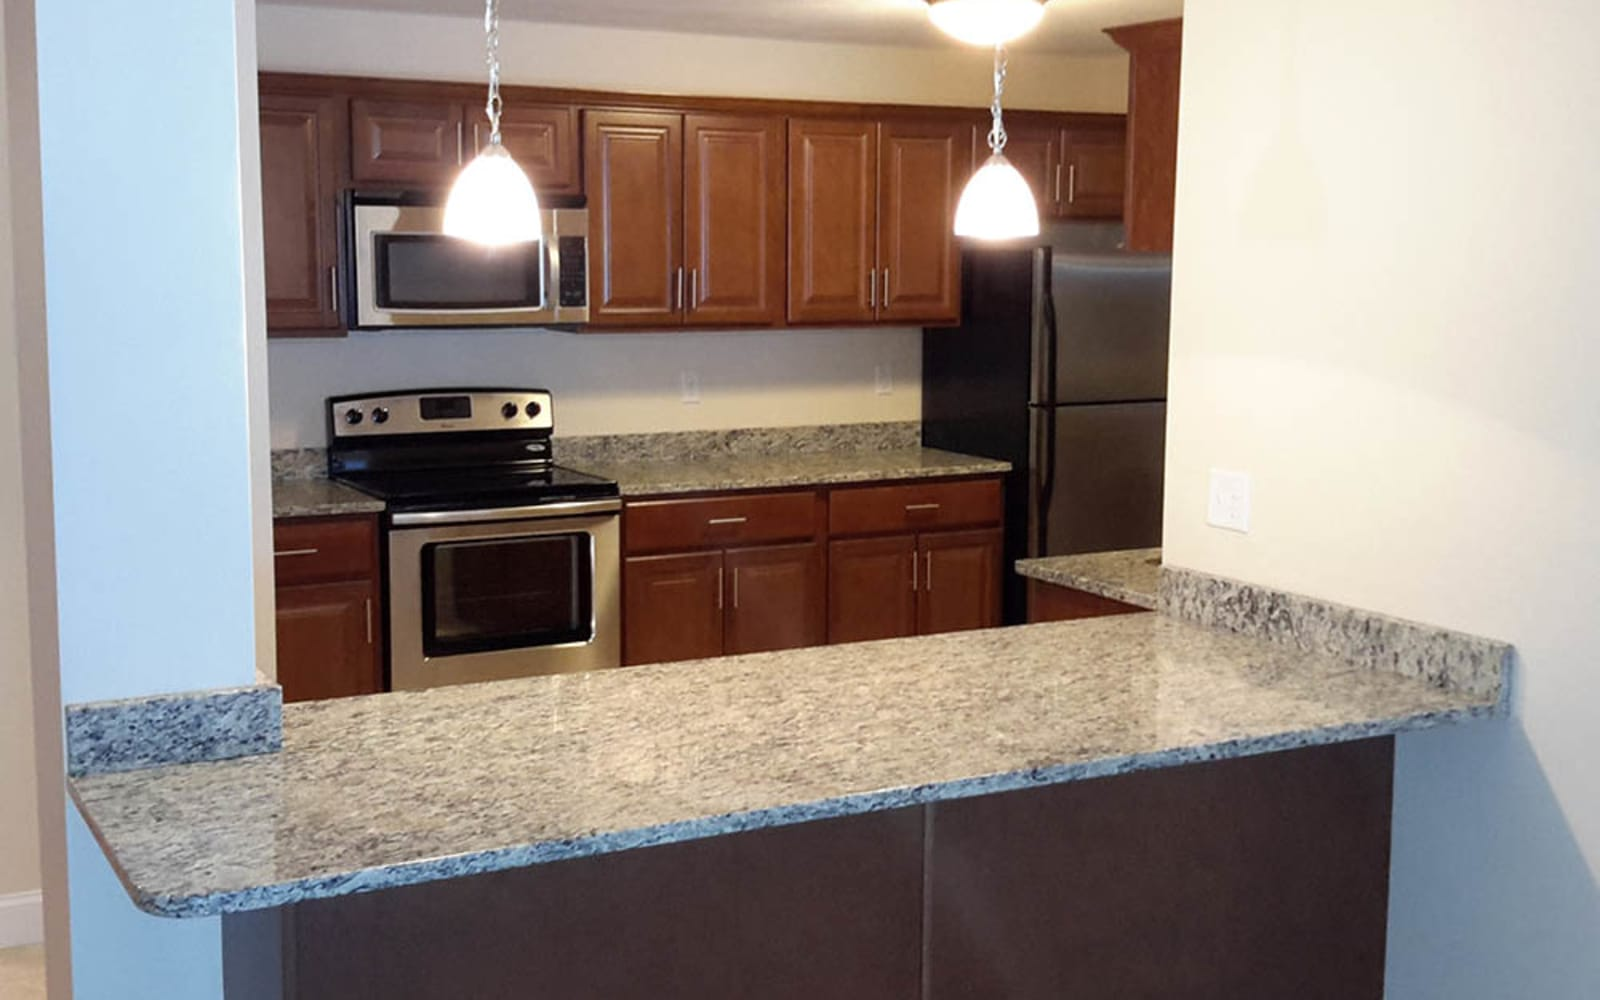 Large counter tops at Grassfields Commons in Dracut, Massachusetts